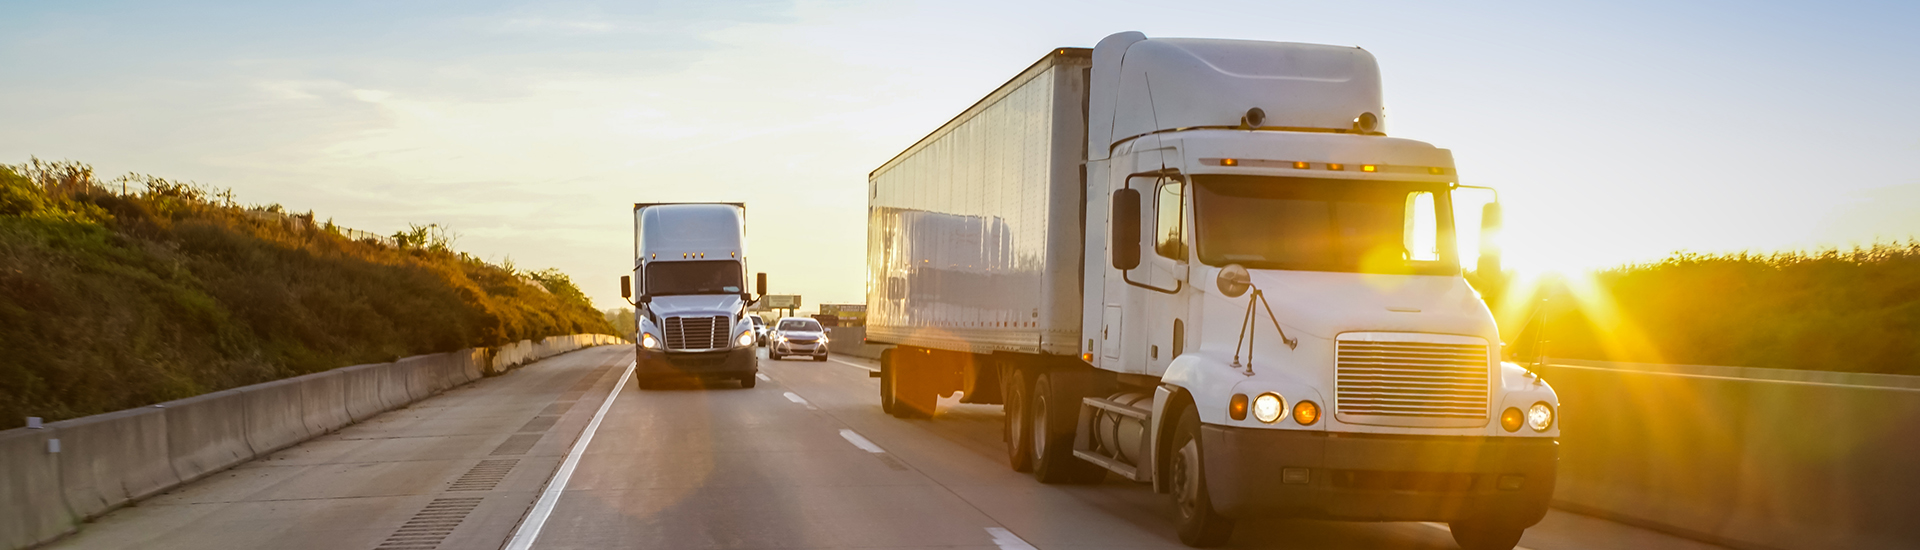 6 Marketing Tactics to Help Your Freight Brokerage Grow